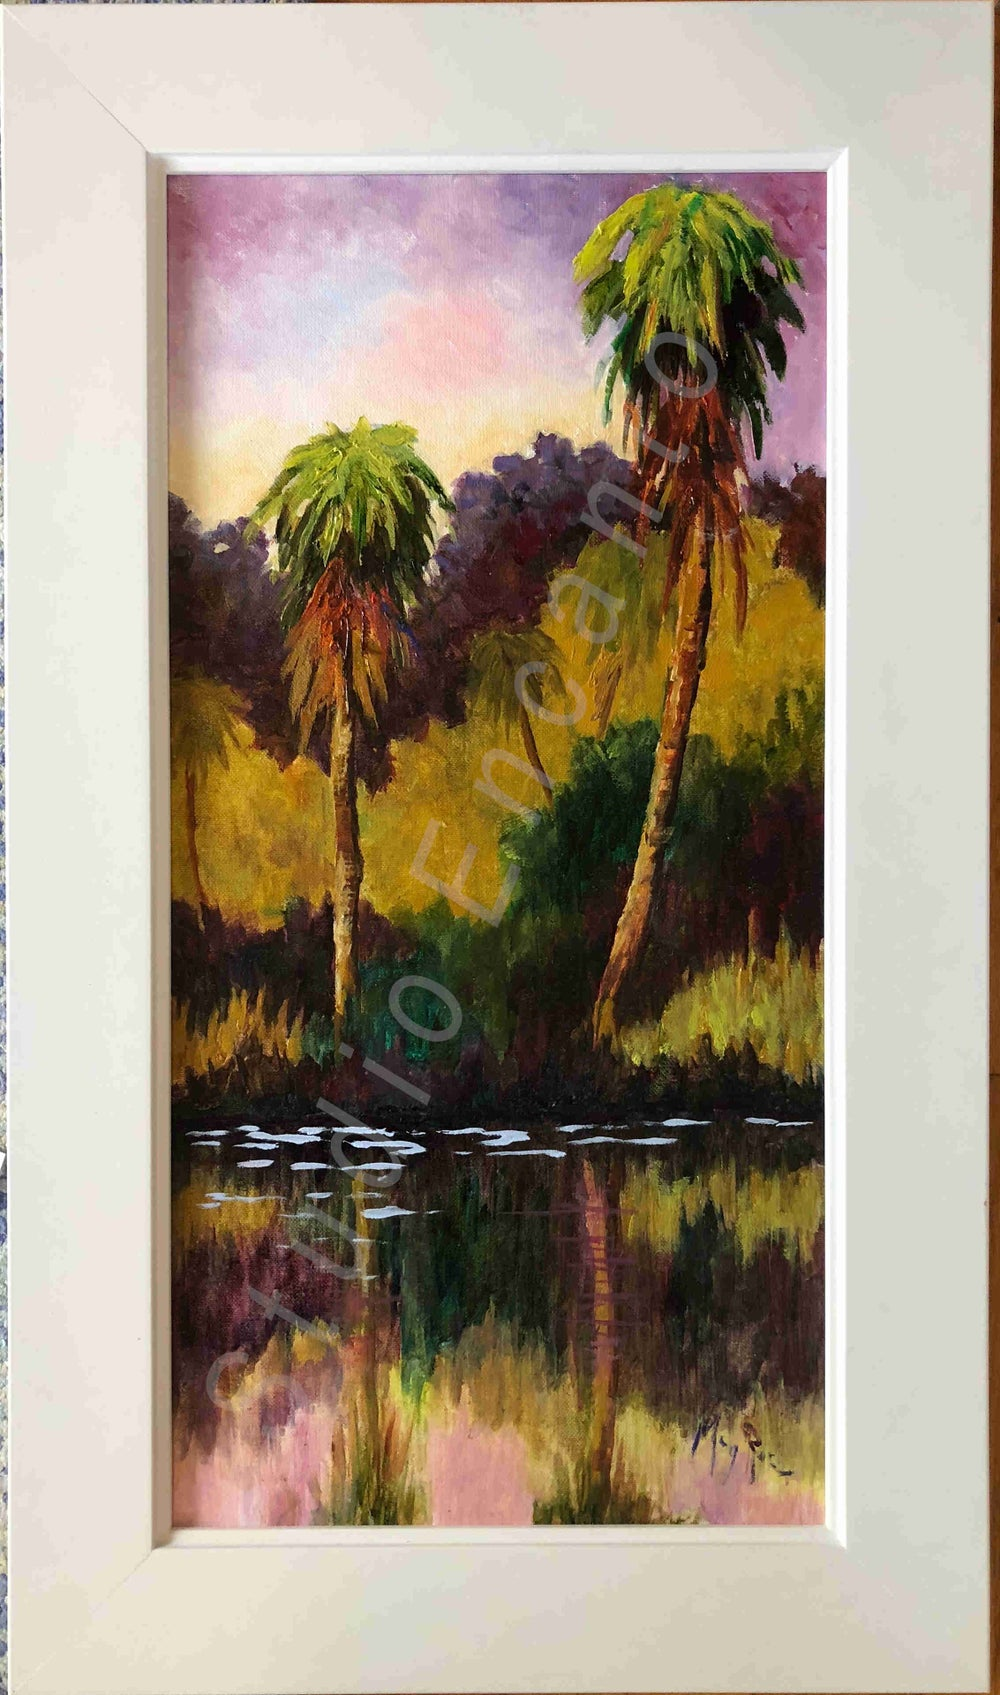 Image of Florida Corridor by Mary Rose Holmes